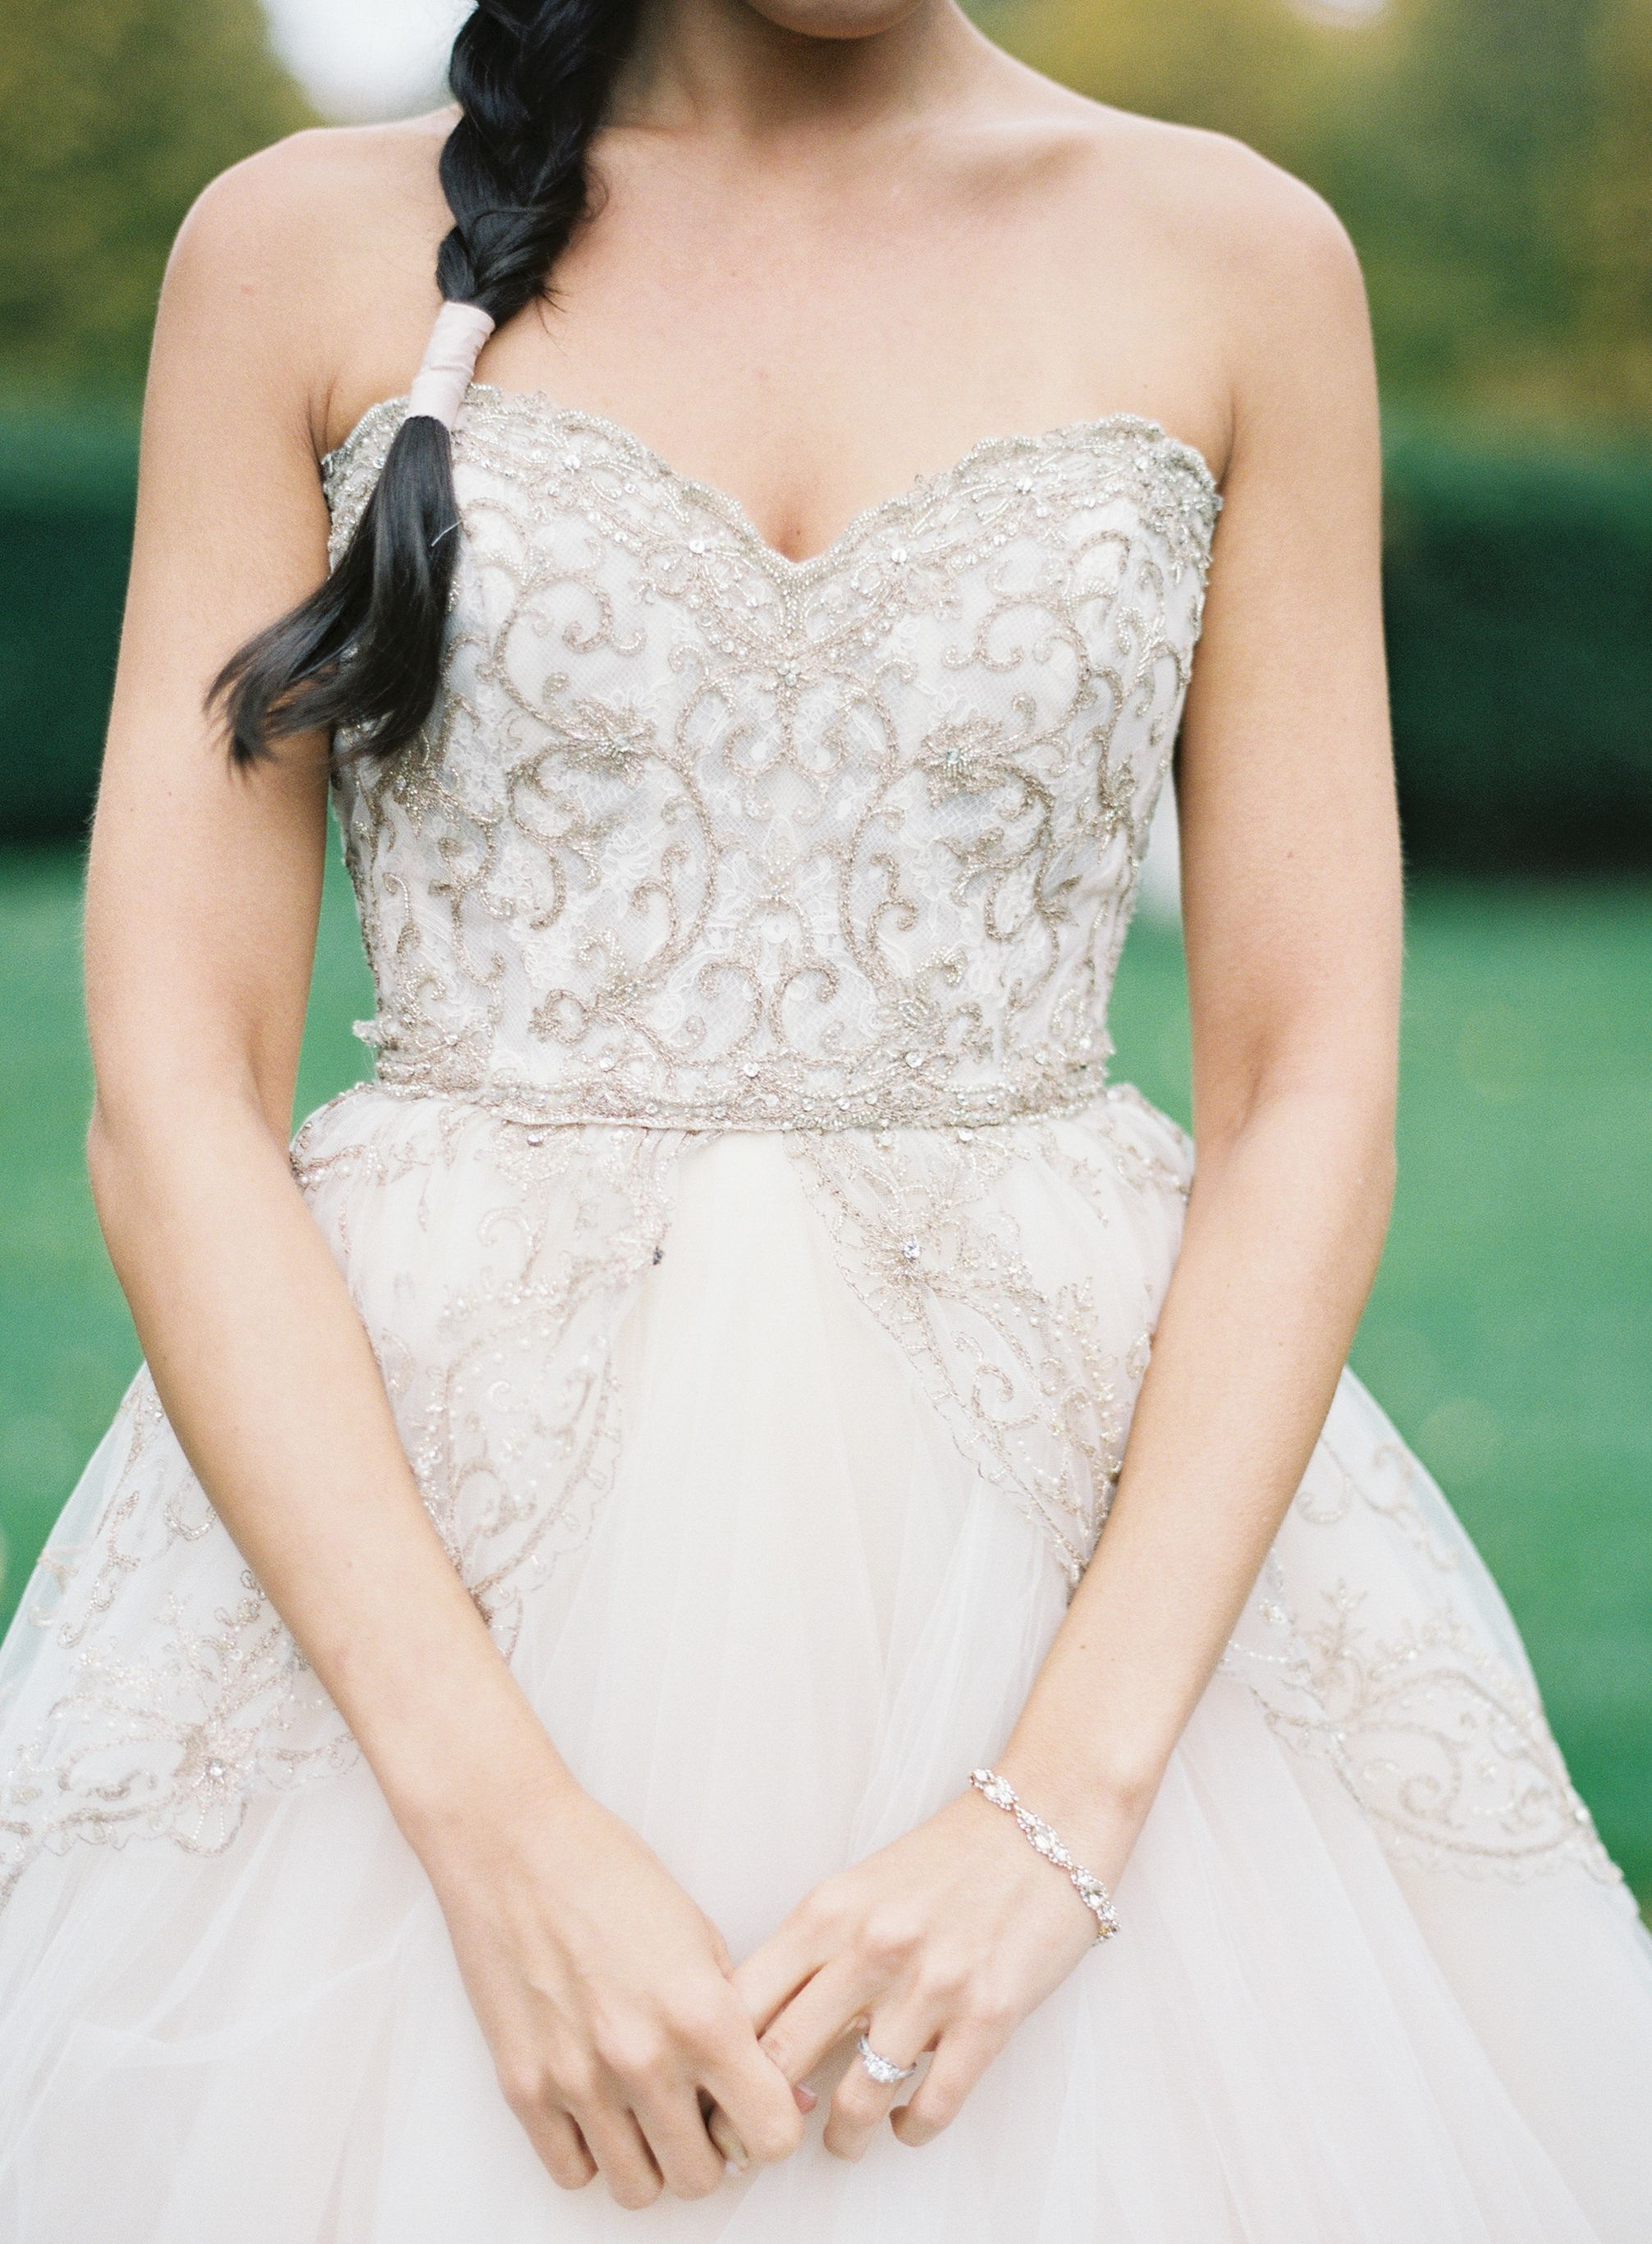 The 35 Most Beautiful Bedazzled Wedding Dresses | All Things to do ...